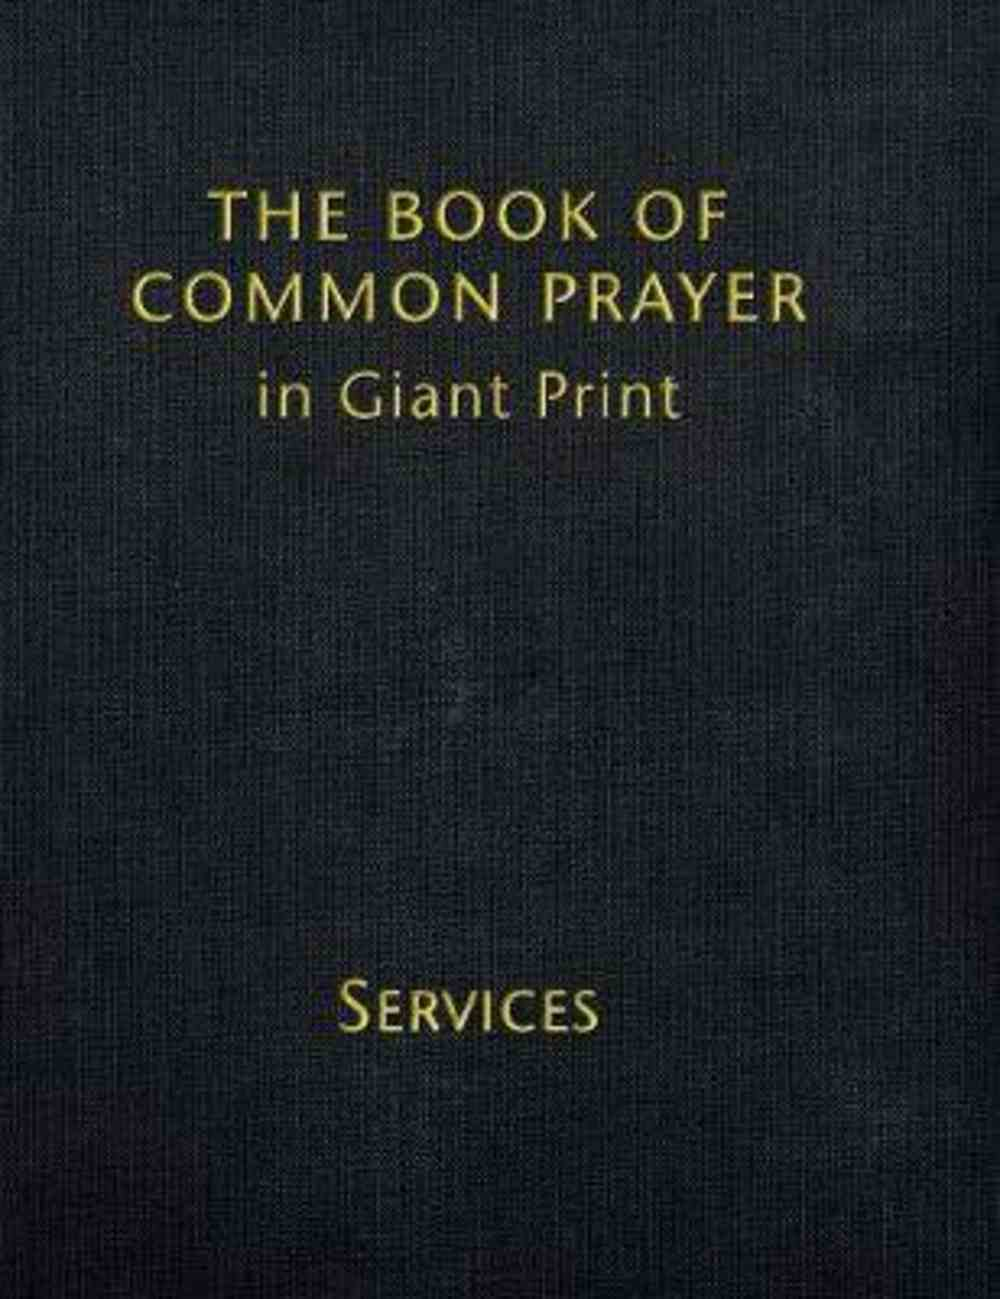 Book of Common Prayer (Volume 1) Black (Giant Print) Hardback